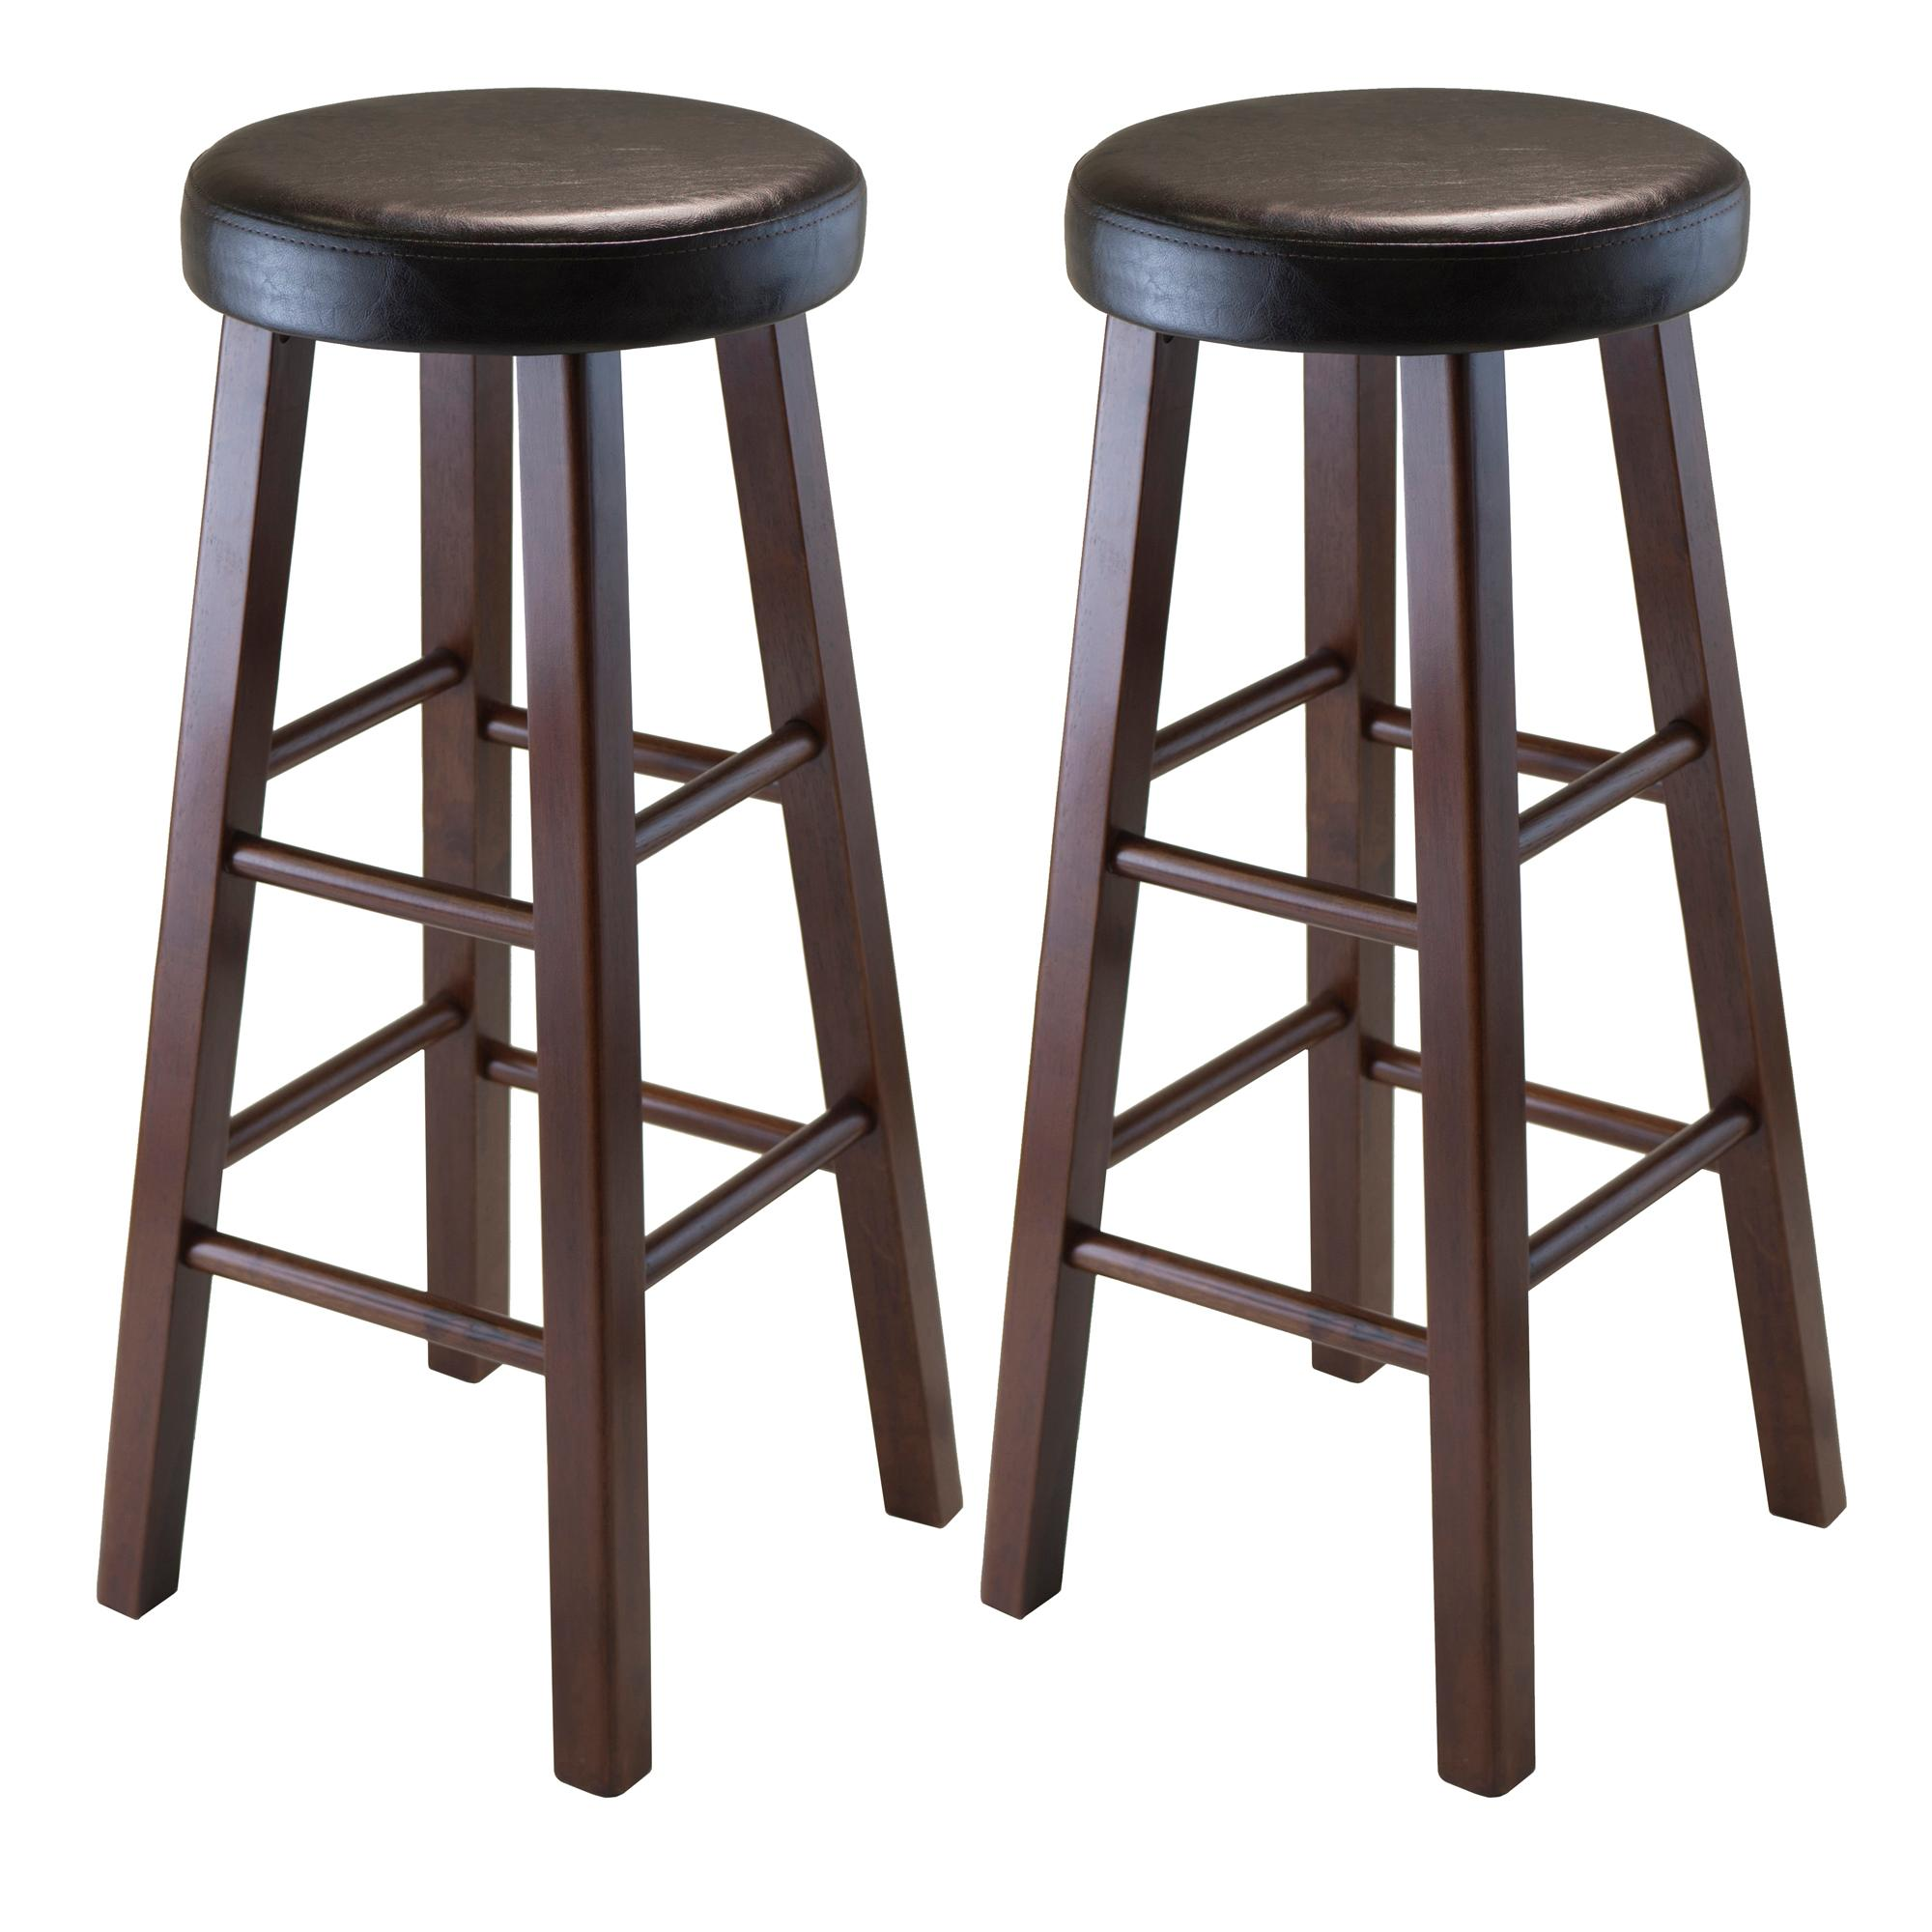 bar stool with pu leather cushion seat and square legs 29 inch set